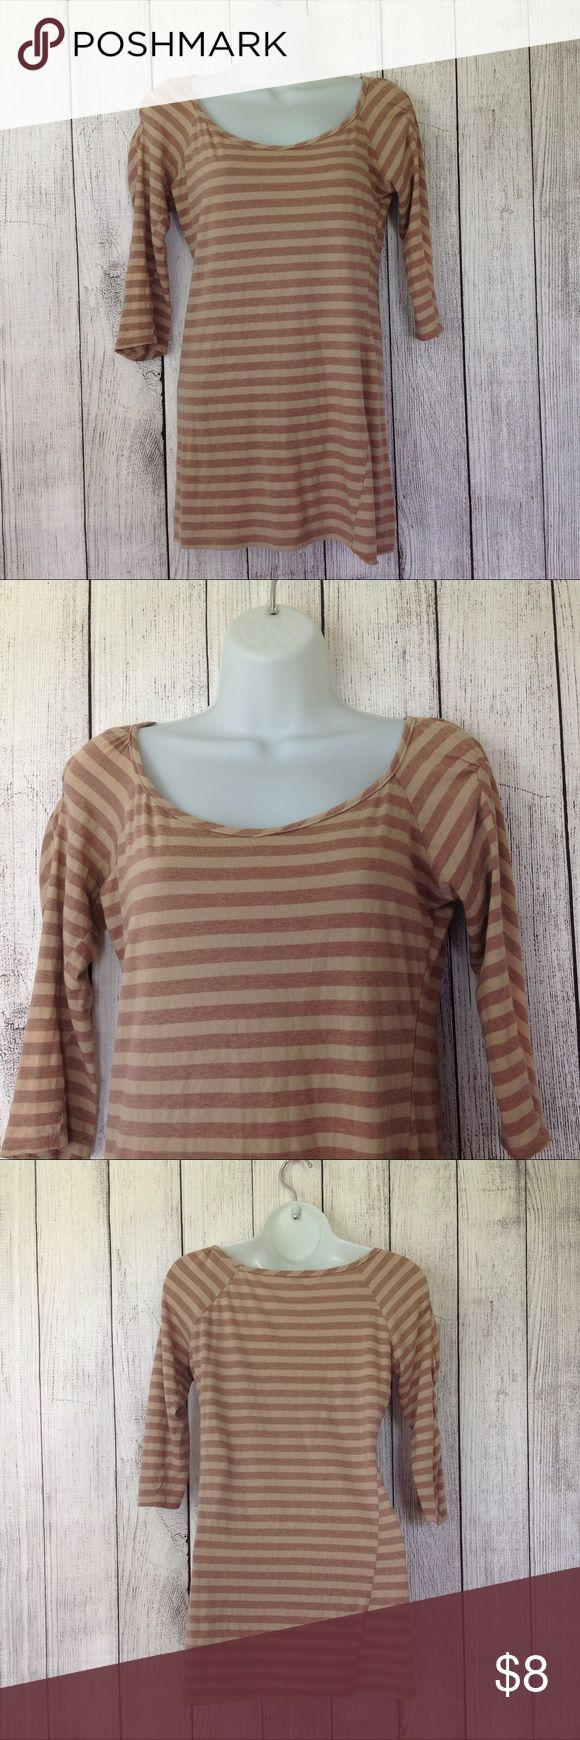 """Charlotte Russe Striped Fitted Top Maker: Charlotte Russe ♥ Material: Rayon ♥ Color: Tan Striped ♥ Measured Size: Pit to pit- 17"""" Pit to cuff- 12"""" Shoulder to waist- 26"""" ♥ Tag Size:  M ♥ PLEASE CHECK YOUR ACTUAL MEASUREMENTS TO MAKE SURE IT IS THE RIGHT SIZE! THANKS!  ♥ Condition: Great Used Condition ♥ Item #: (office use only) A  Follow us on Instagram and facebook for coupon codes!  INSTAGRAM-thehausofvintage1984 Facebook- intergalactic haus of vintage 1984 or @hausofvintage1984…"""